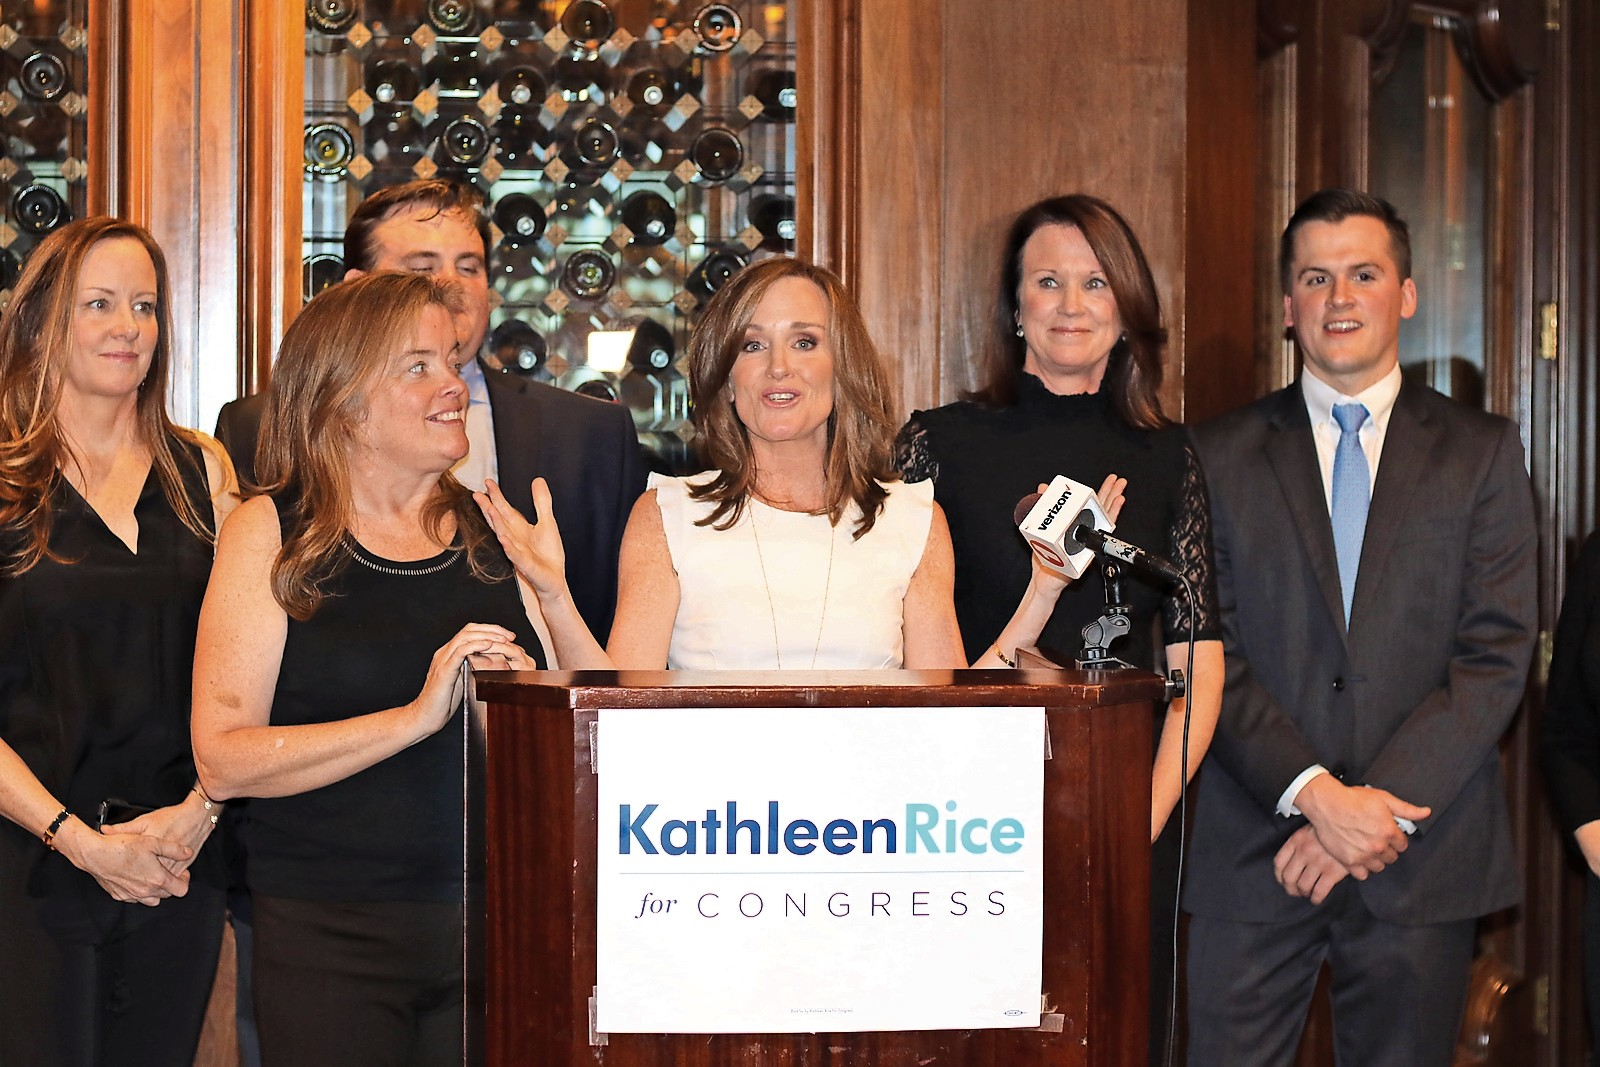 U.S. Rep. Kathleen Rice, who represents the 4th District, handily won re-election on Tuesday.